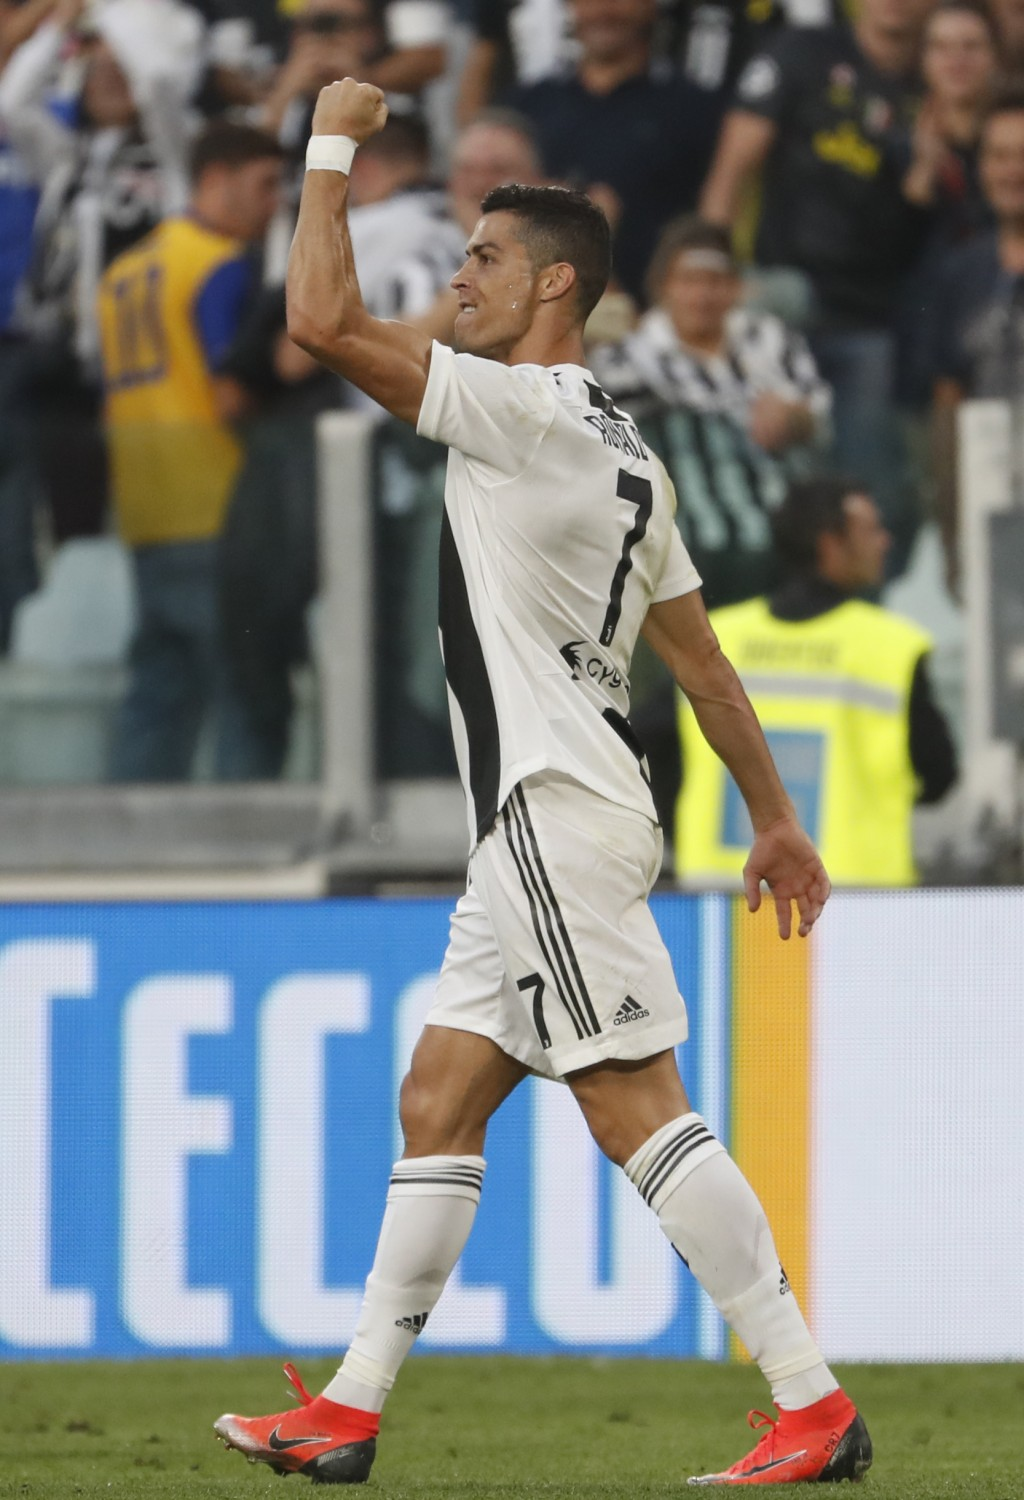 Juventus' Cristiano Ronaldo celebrates after scoring his team's first goal during an Italian Serie A soccer match between Juventus and Genoa, at the A